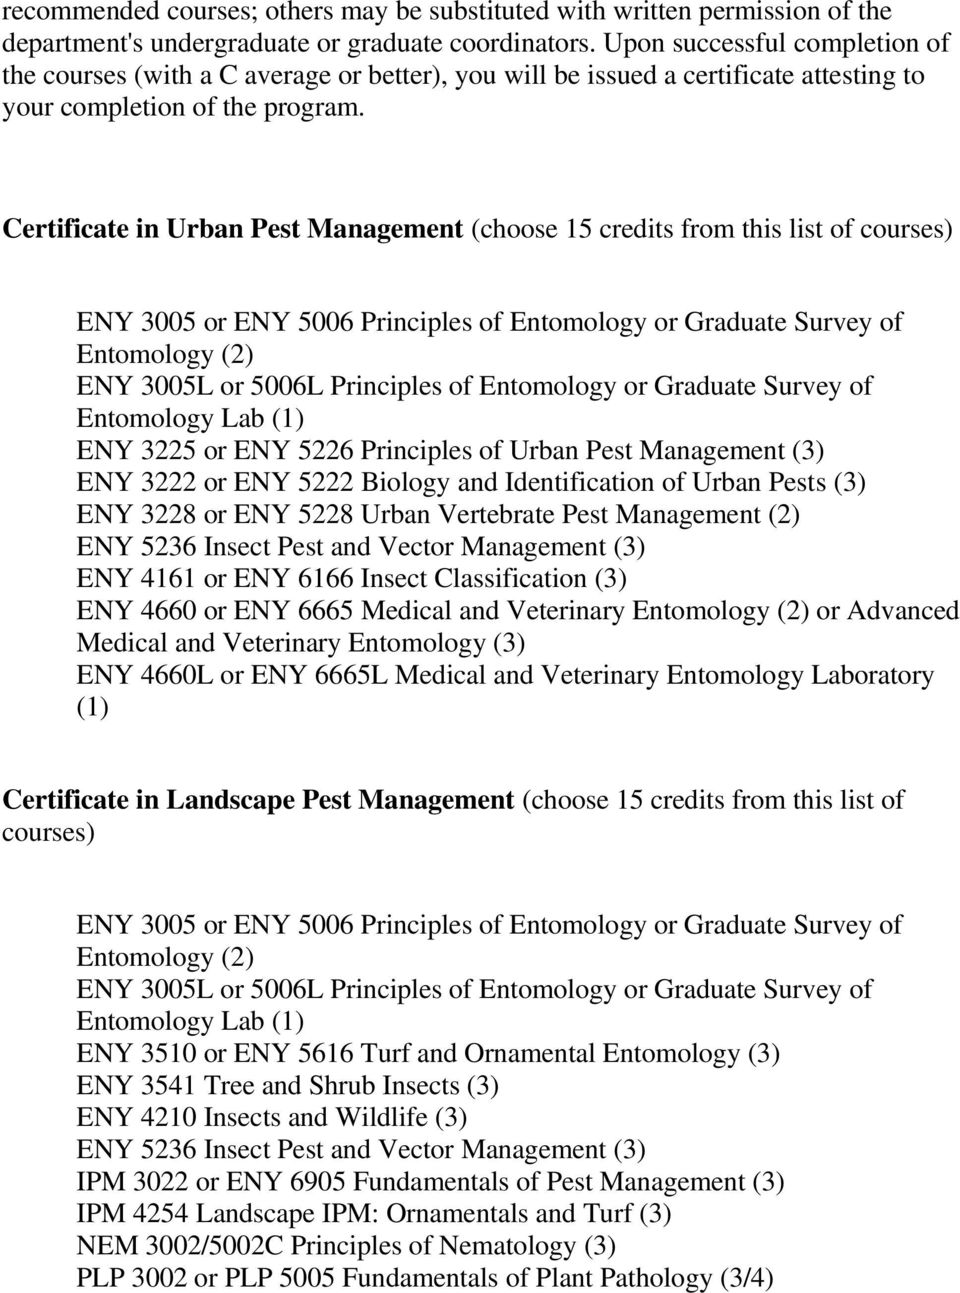 Certificate in Urban Pest Management (choose 15 credits from this list of courses) ENY 3005 or ENY 5006 Principles of Entomology or Graduate Survey of Entomology (2) ENY 3005L or 5006L Principles of